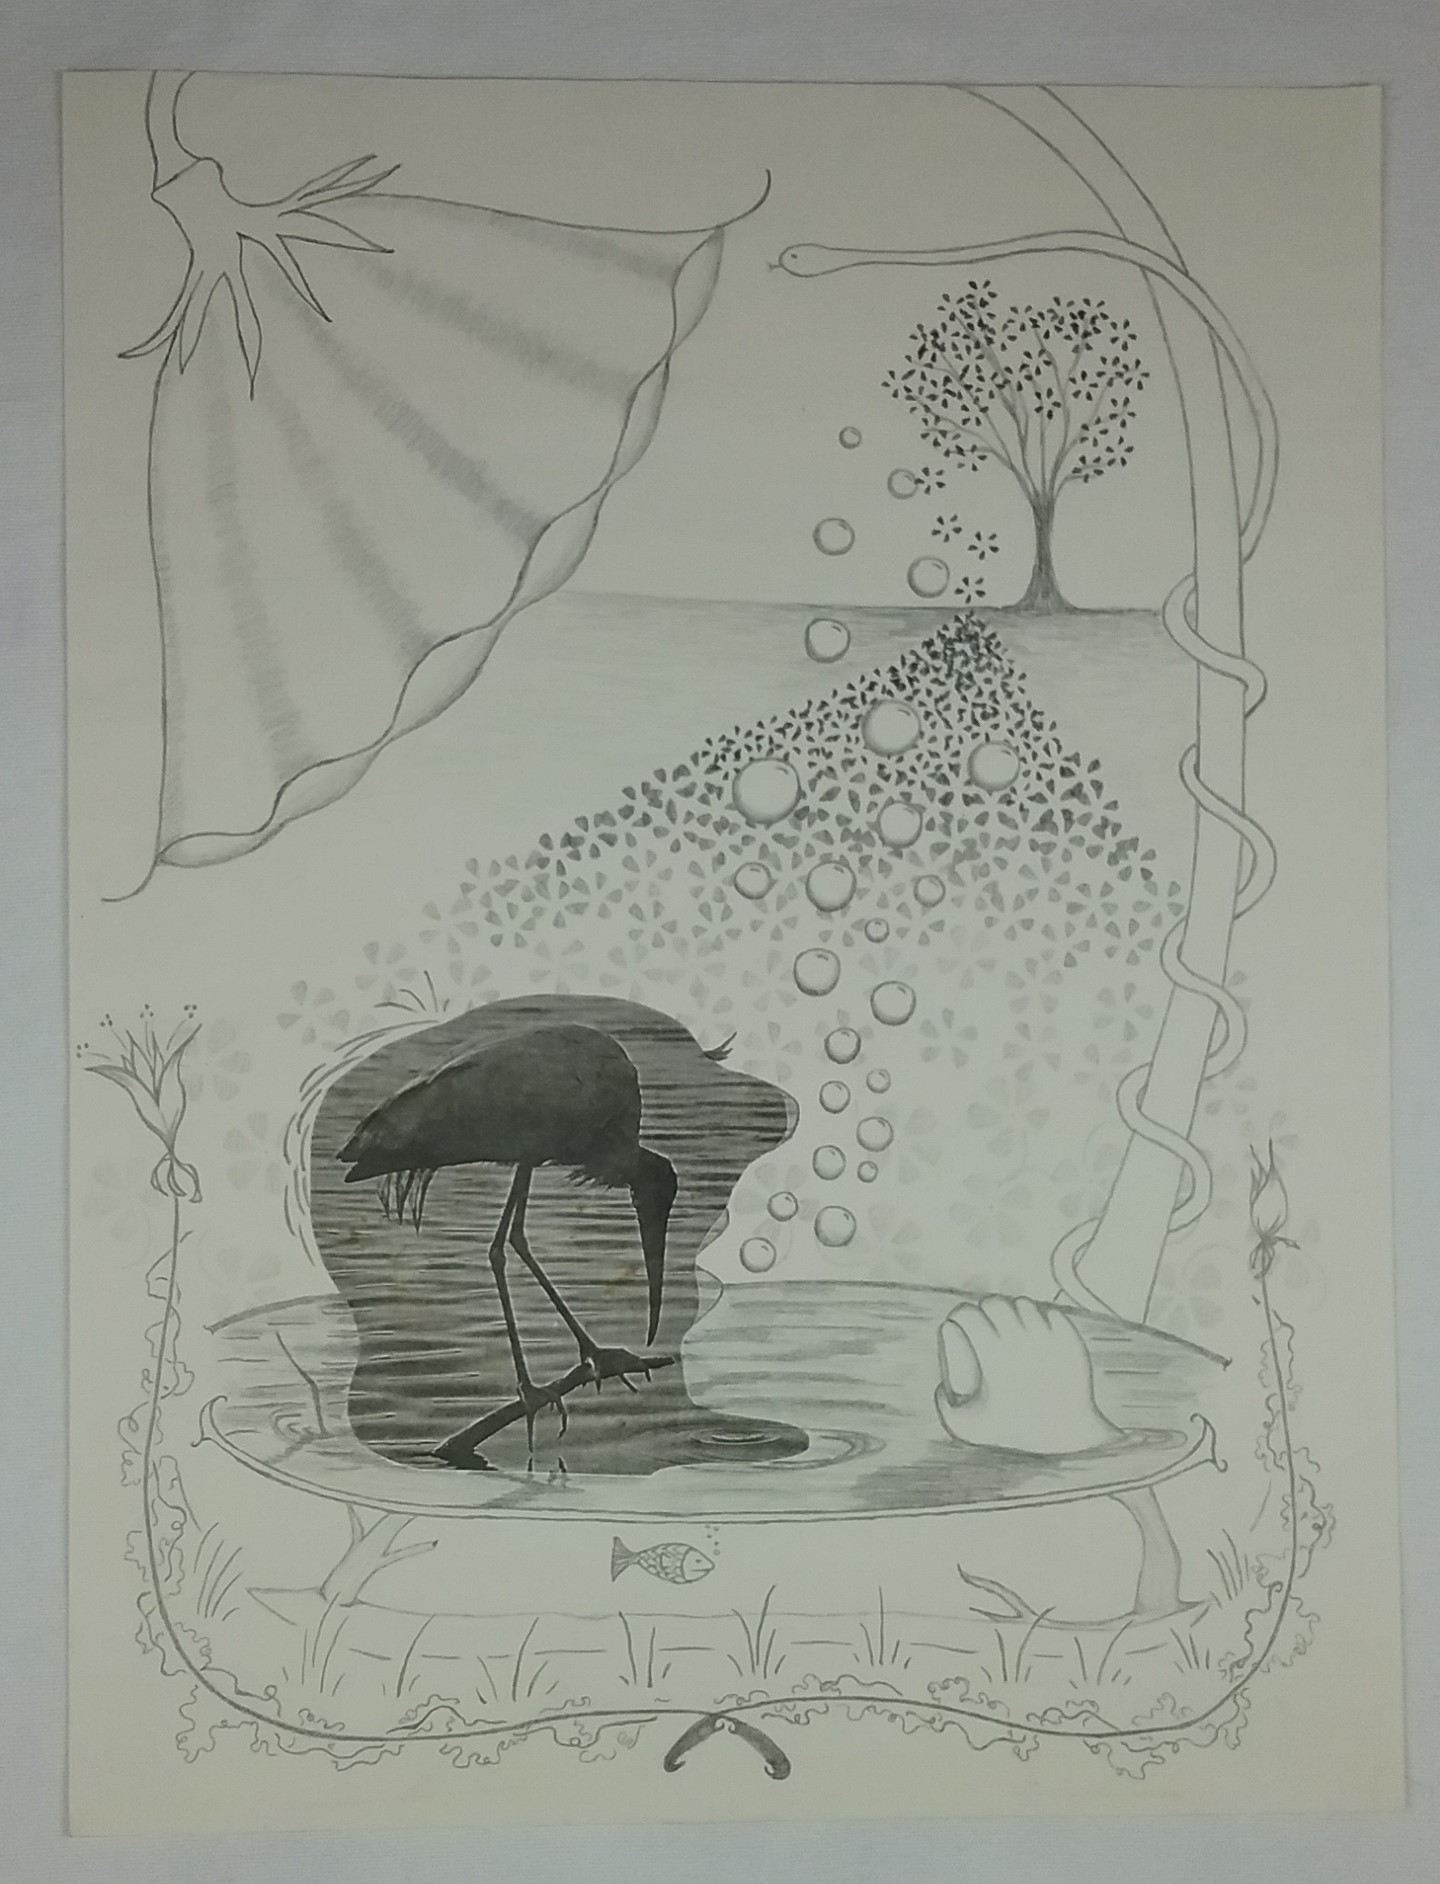 Bathtub man in nature, part of a series using a photocopied imaged of a heron, by Mary Warner.